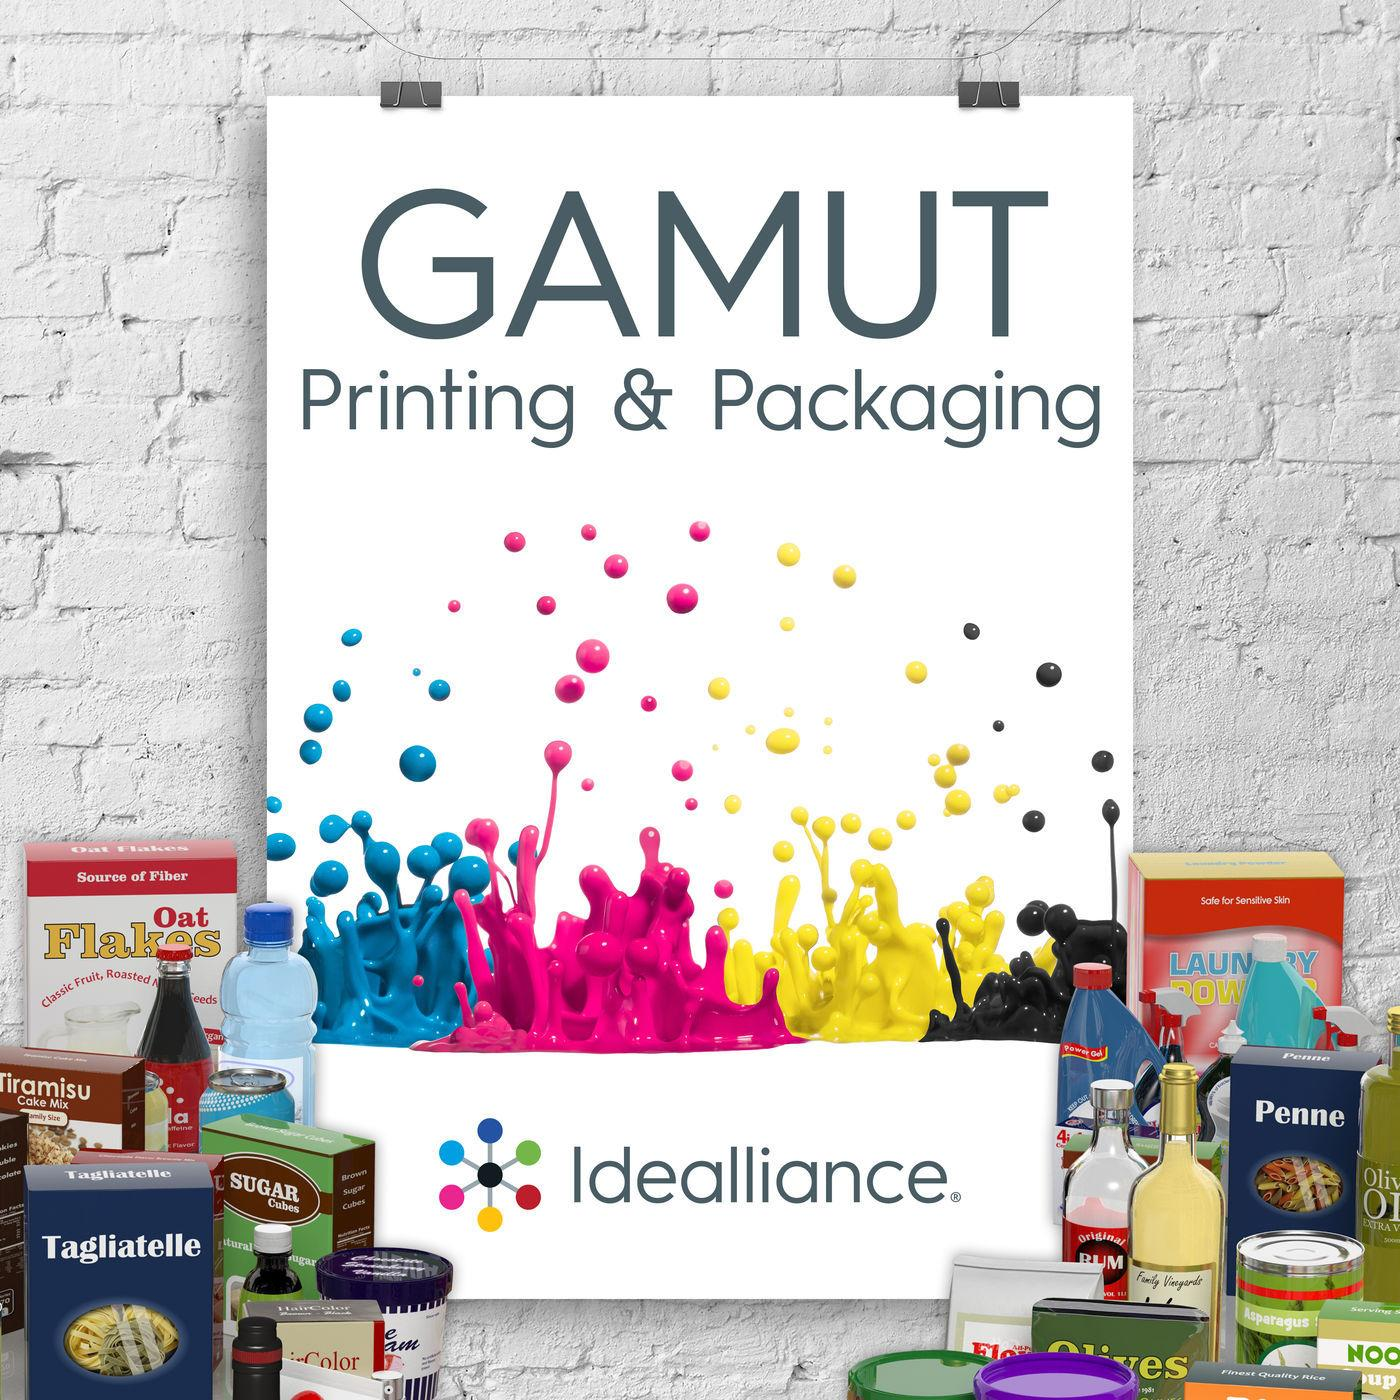 GAMUT: Idealliance Printing & Packaging Podcast - Idealliance